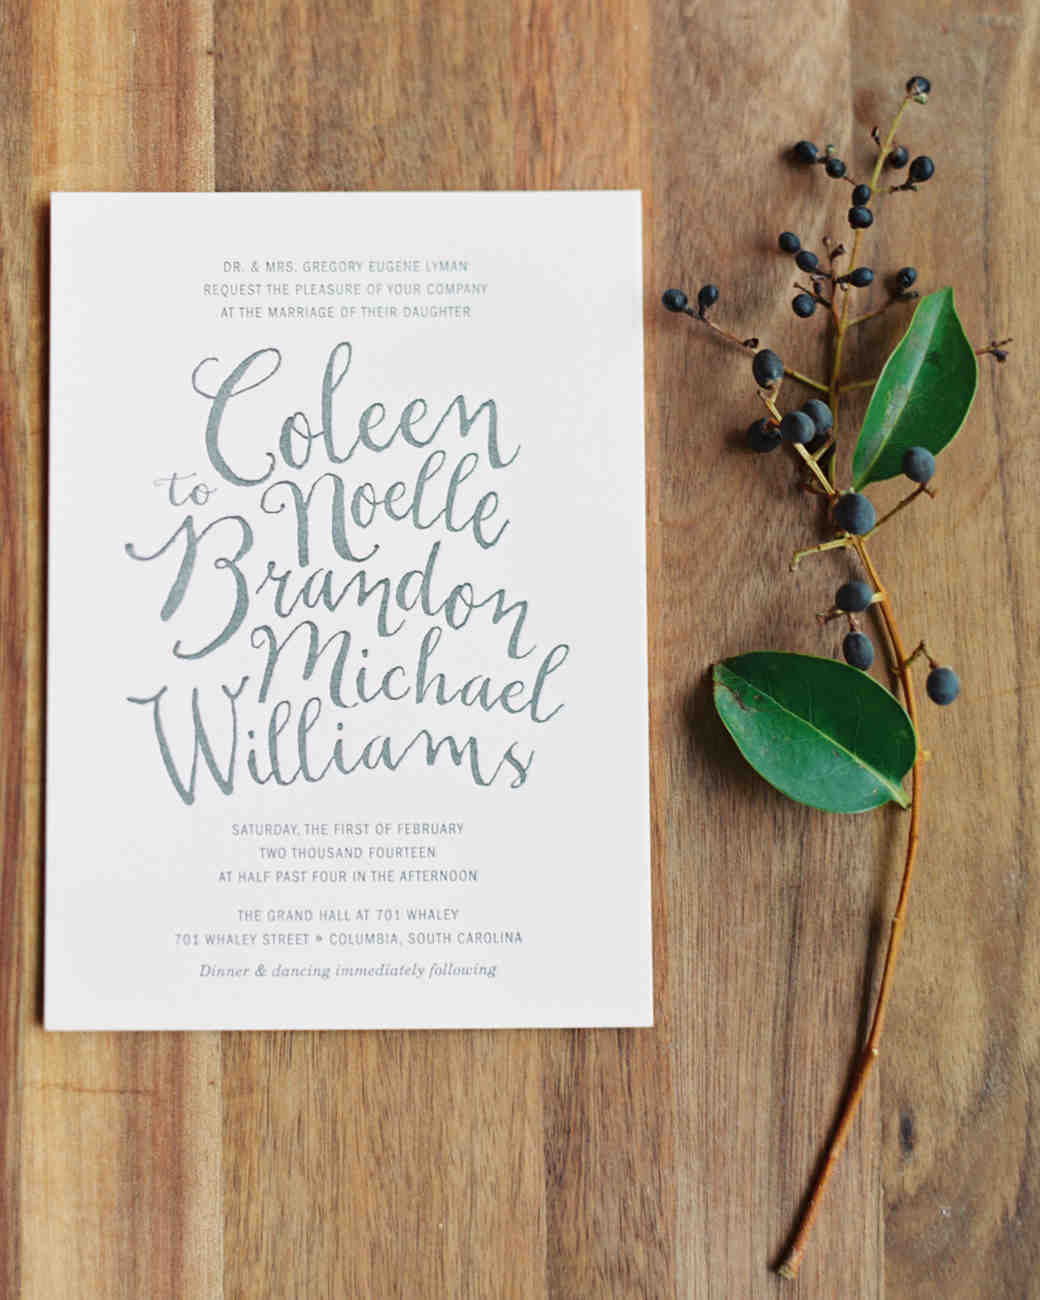 coleen-brandon-wedding-invite-0614.jpg